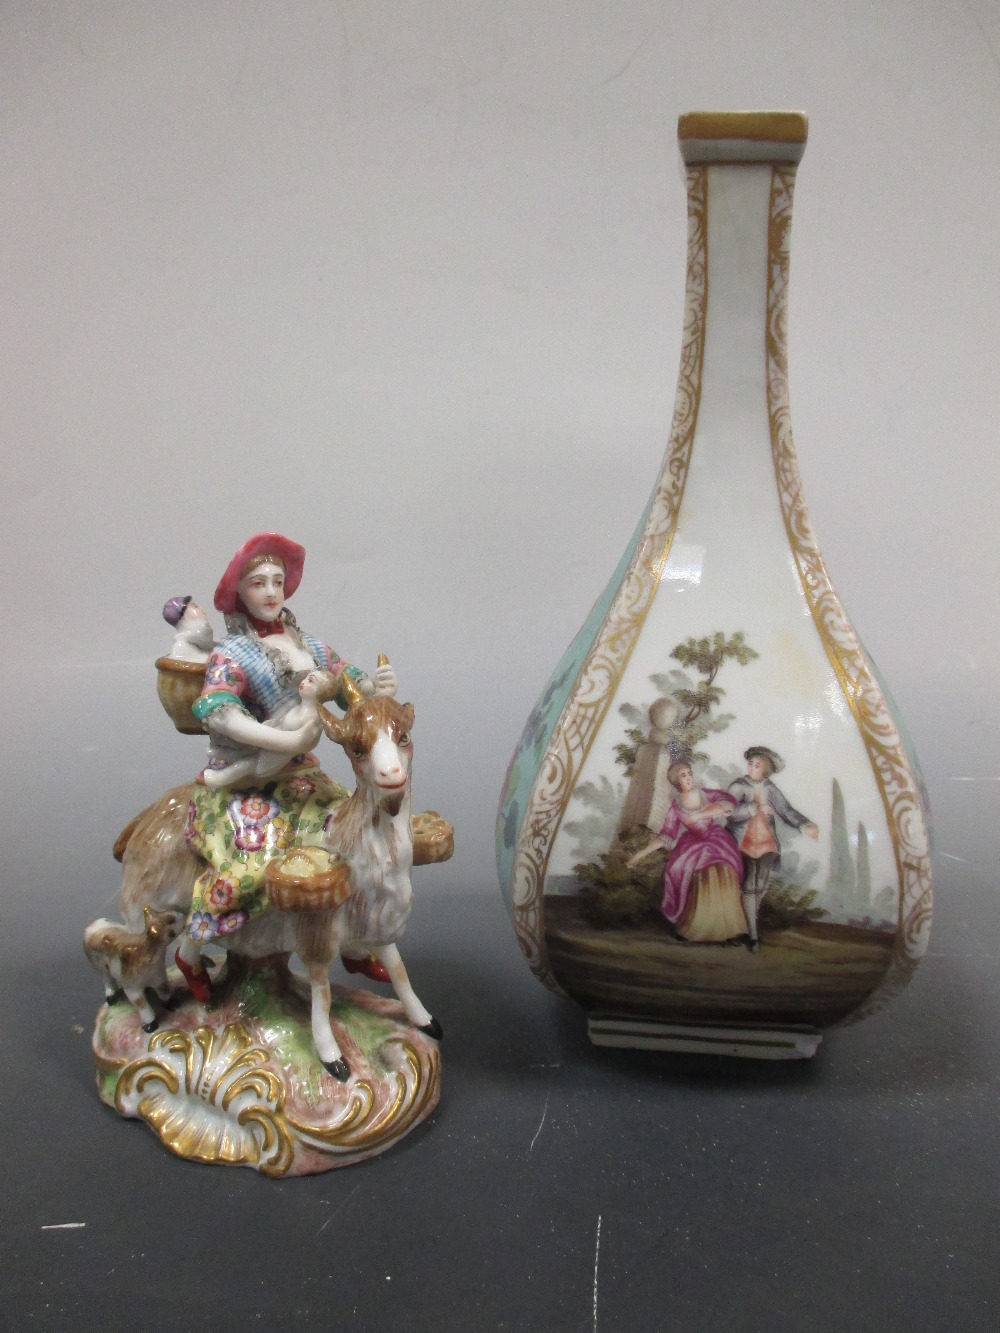 Lot 25 - A Thuringian bottle vase together with an Ernst Bohne group, 'The Tailor's Wife' (2)